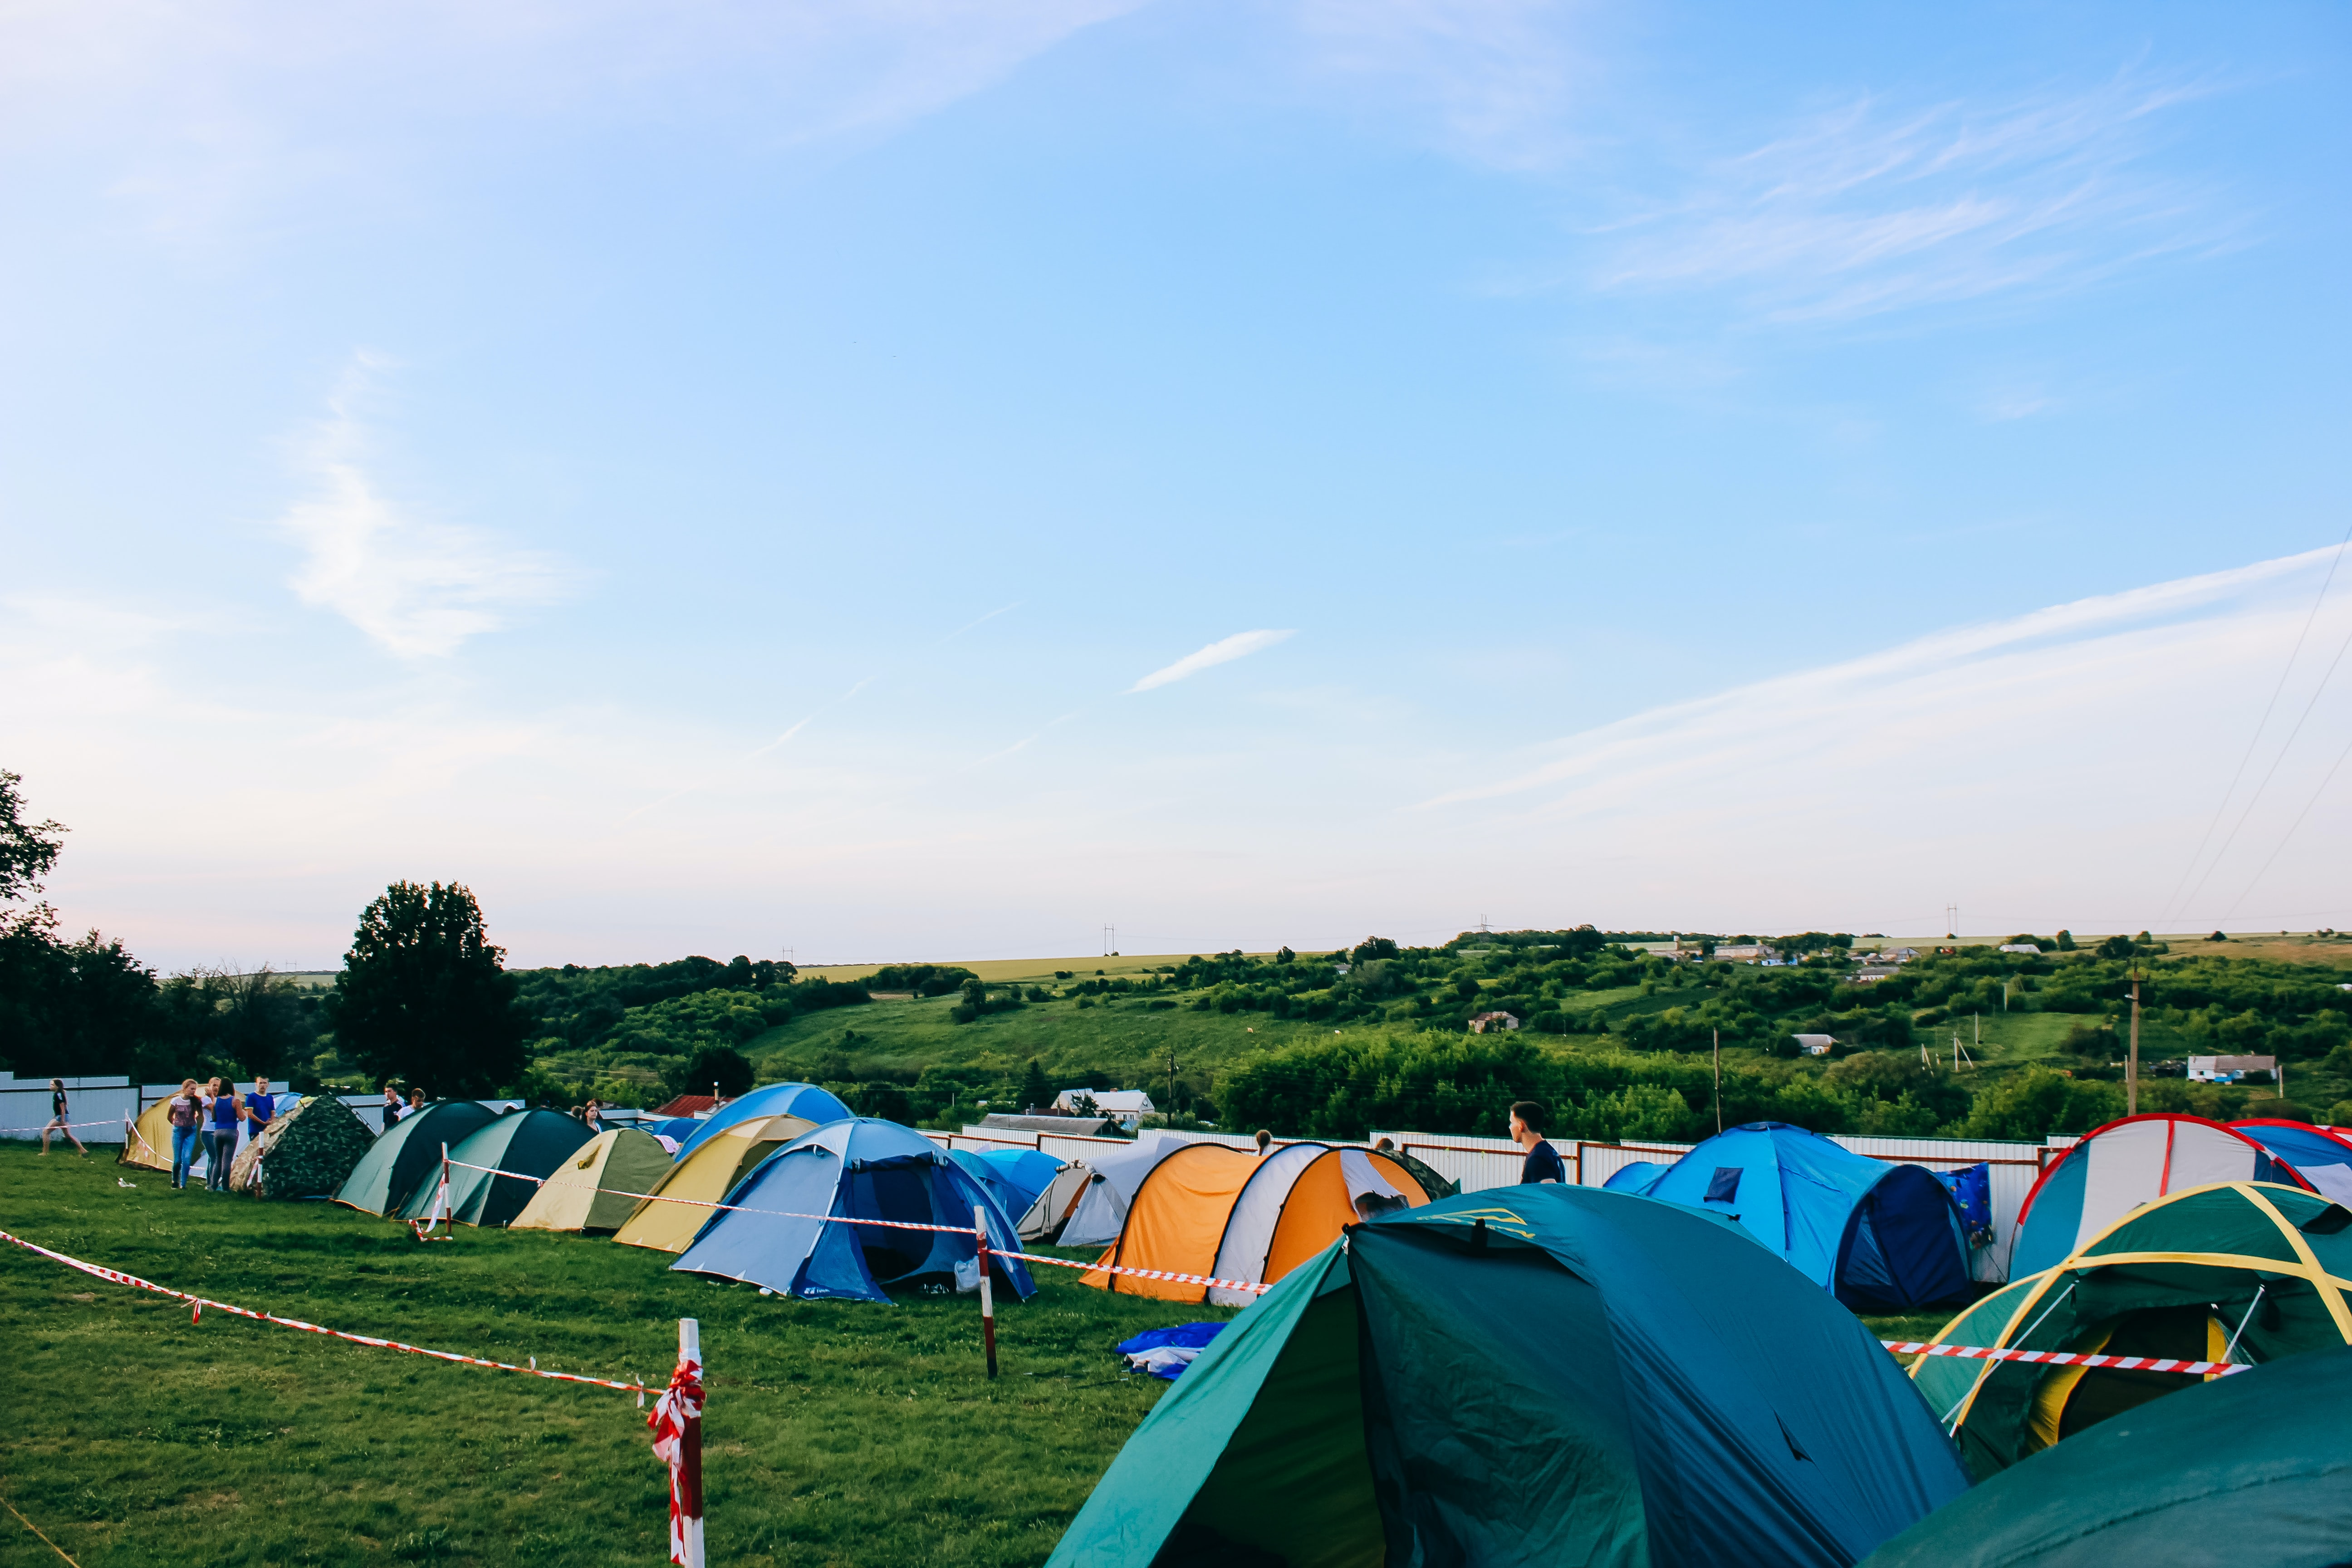 Colorful tents are pitched along a grassy field with a bright blue sky behind thing